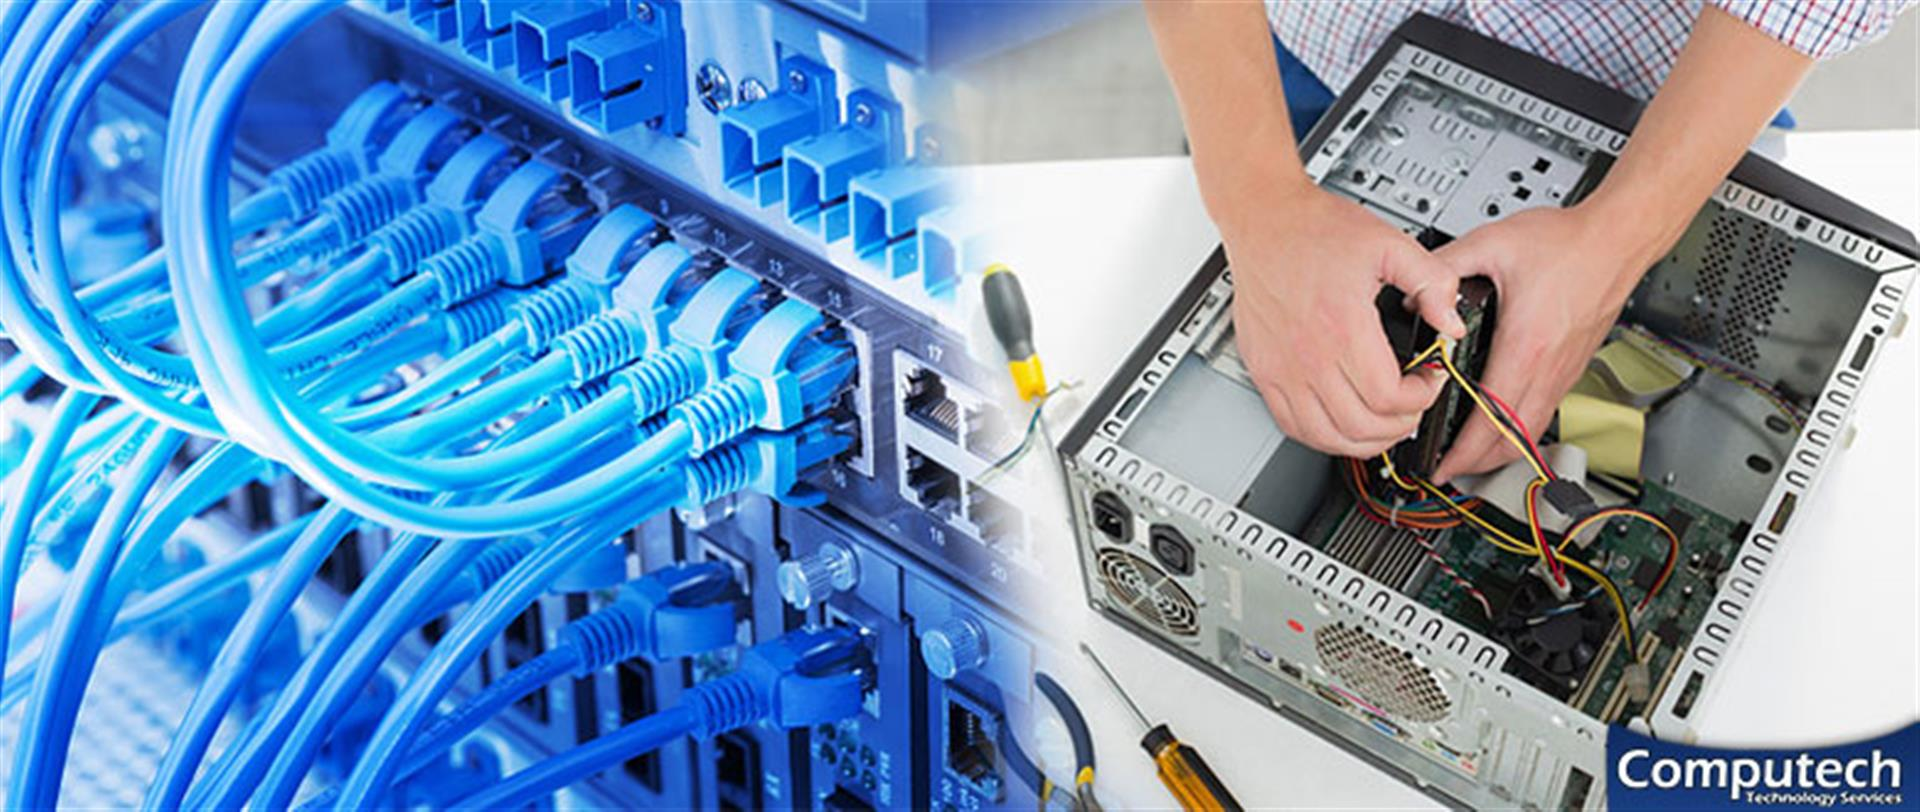 Humboldt Tennessee On-Site PC & Printer Repair, Networks, Voice & Data Cabling Services